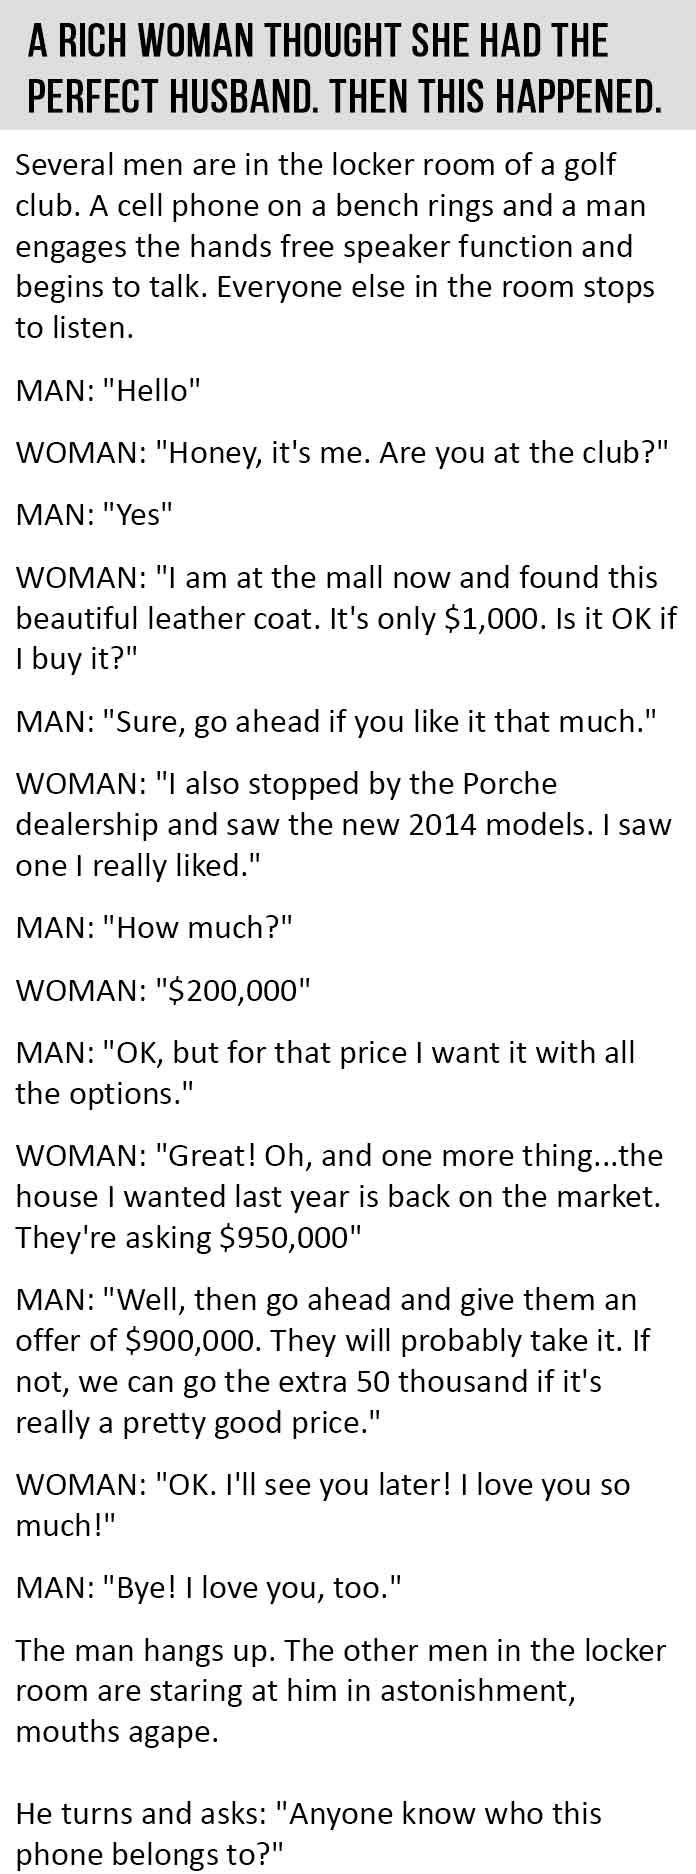 A Rich Woman Thought She Had The Perfect Husband Then This Happened funny quotes quote jokes